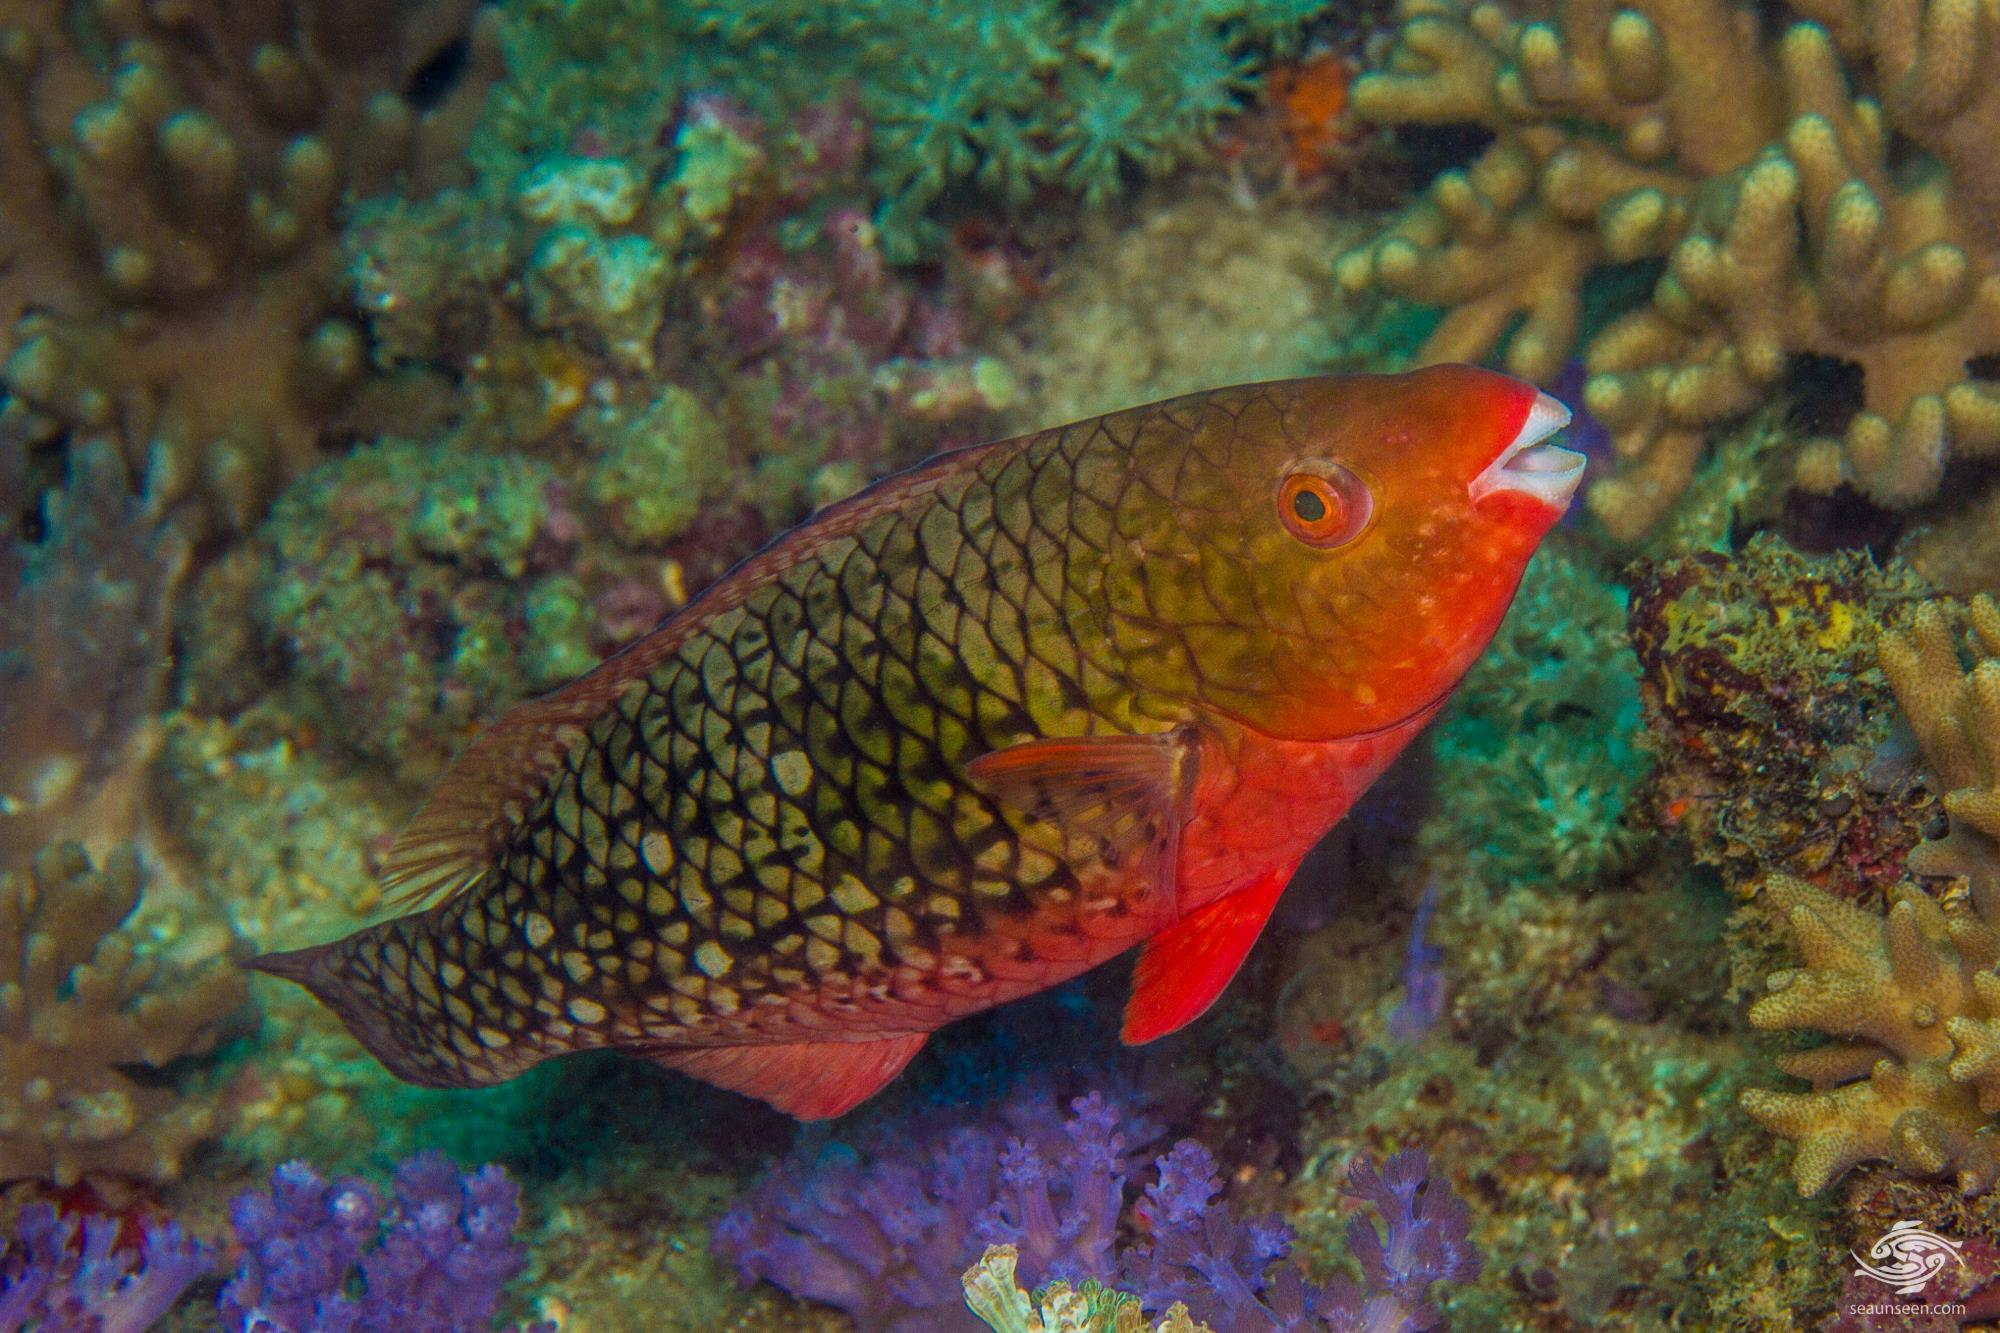 Young Initial Phase Ember Parrotfish (Scarus rubroviolaceus)  is also known as the Redlip Parrotfish and Bicolor Parrotfish